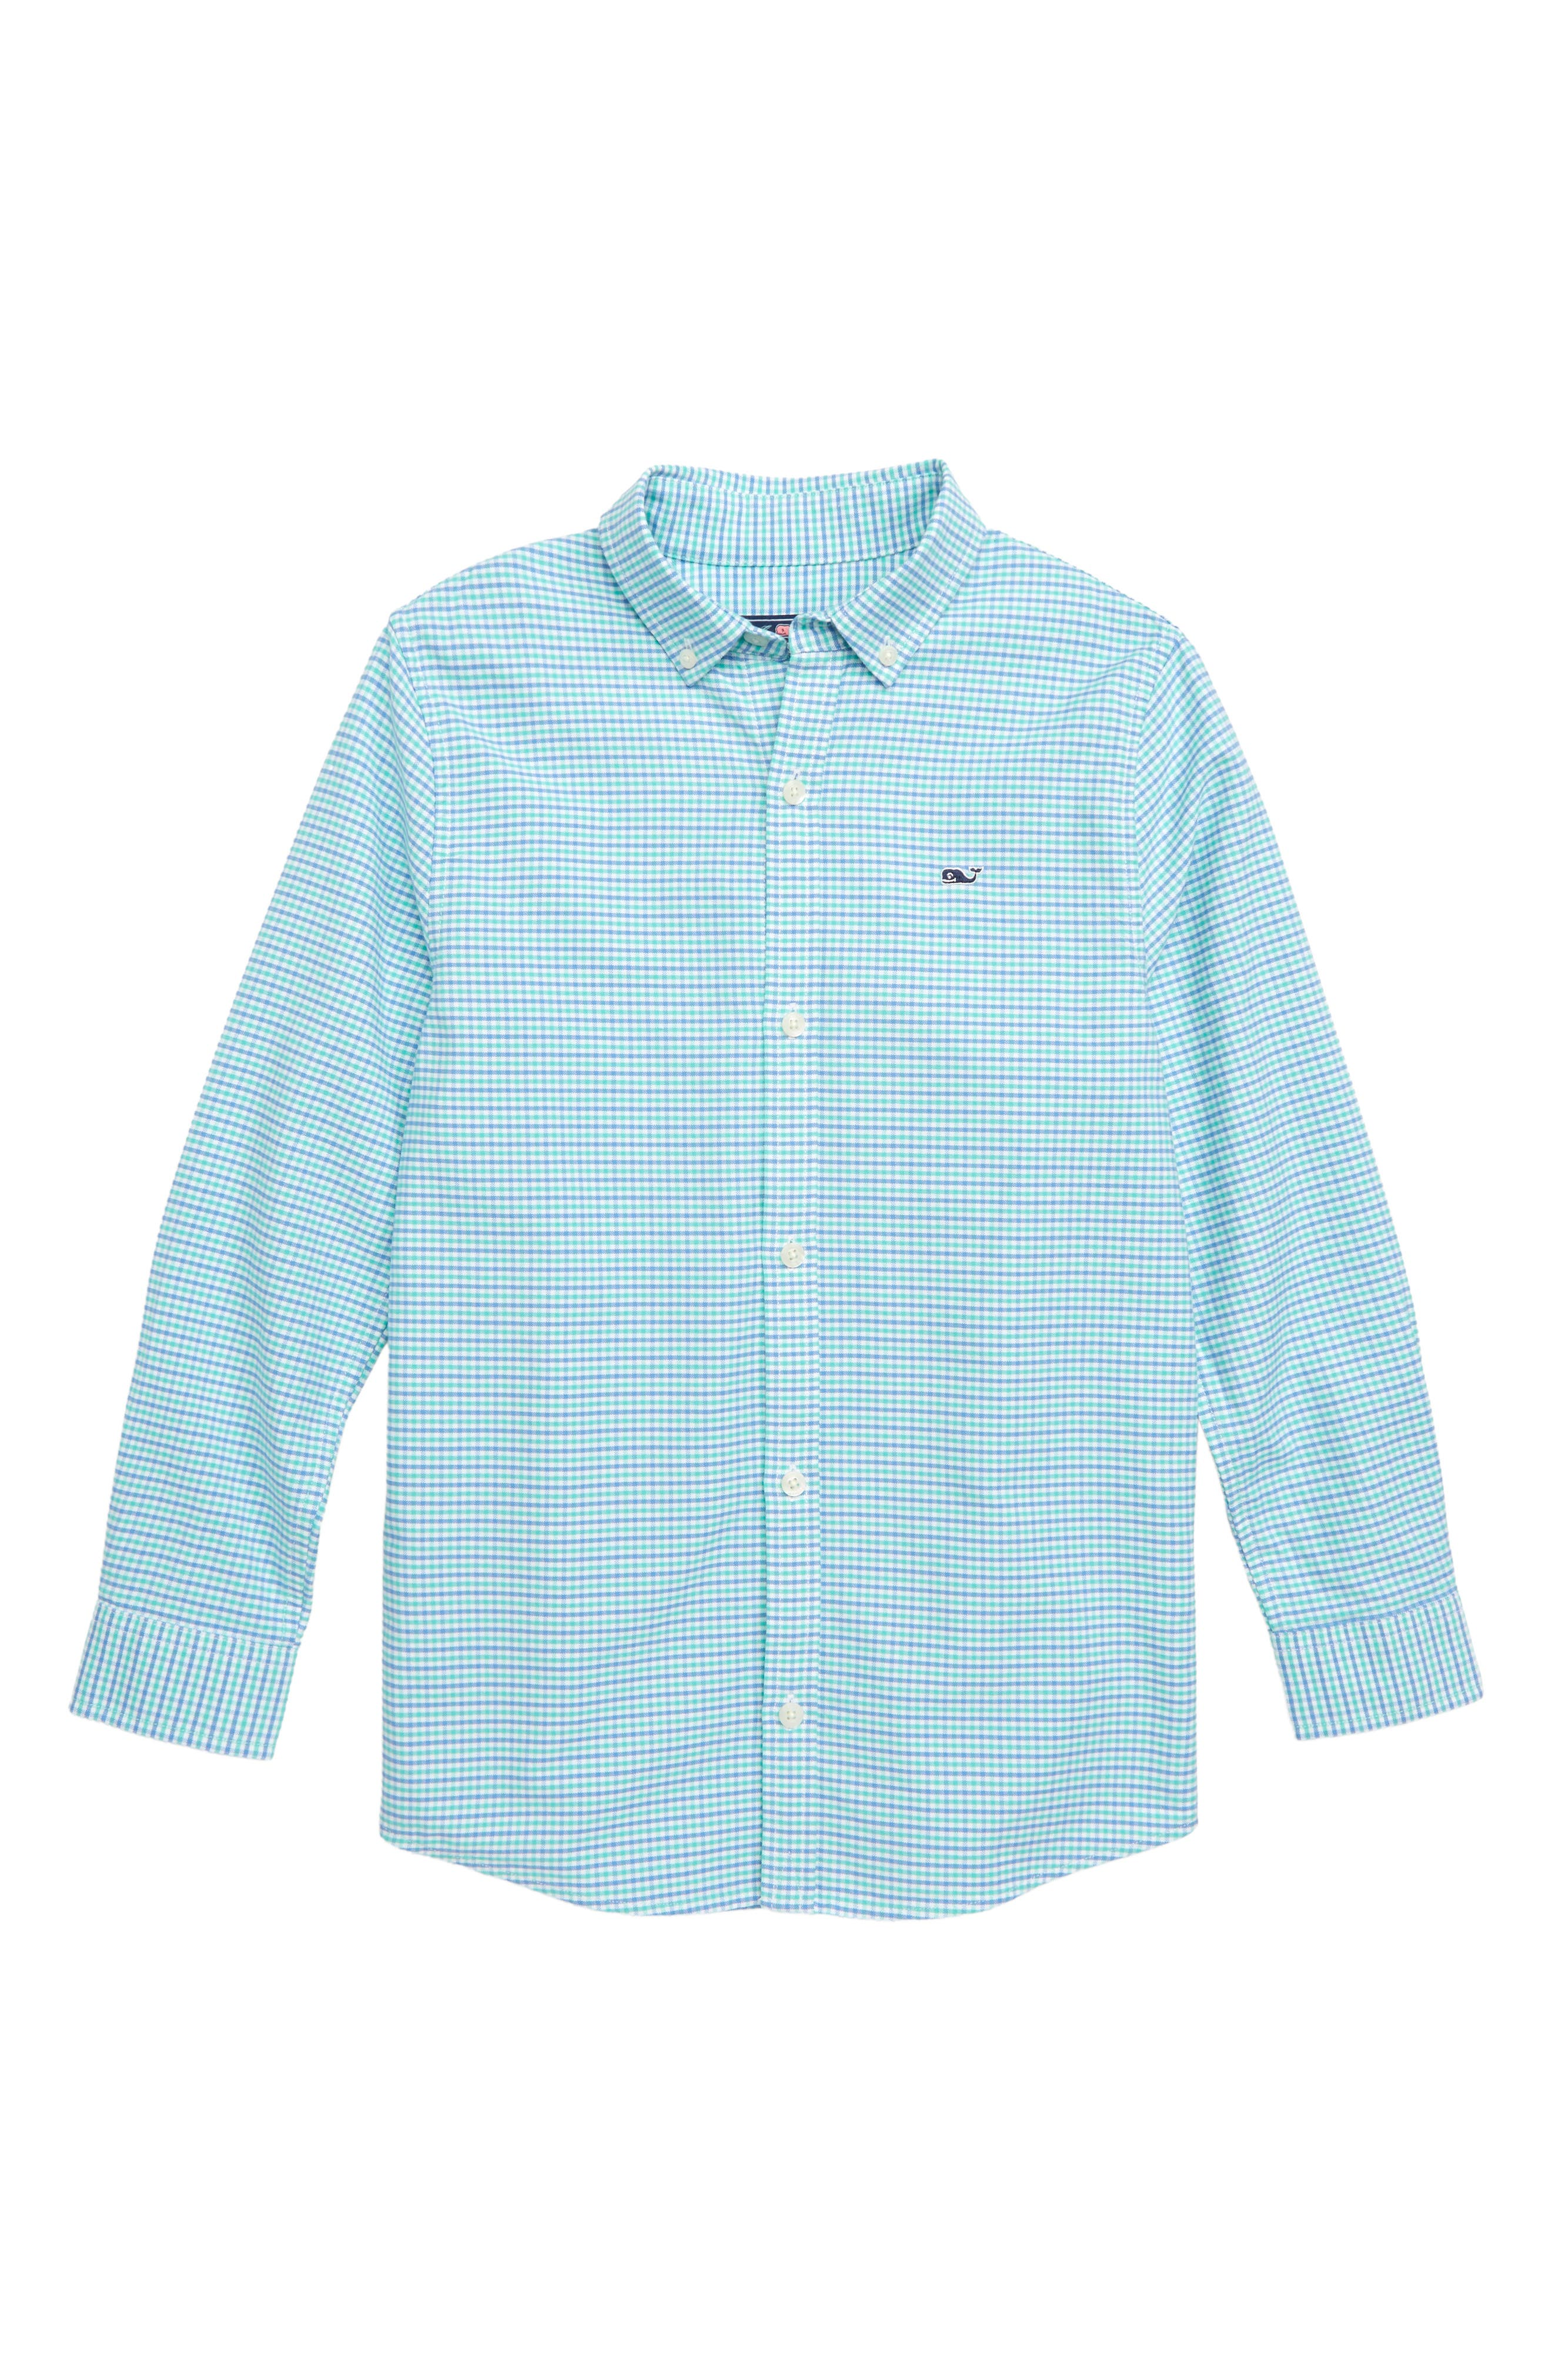 Bell Haven Plaid Oxford Shirt,                         Main,                         color, CAPRI BLUE